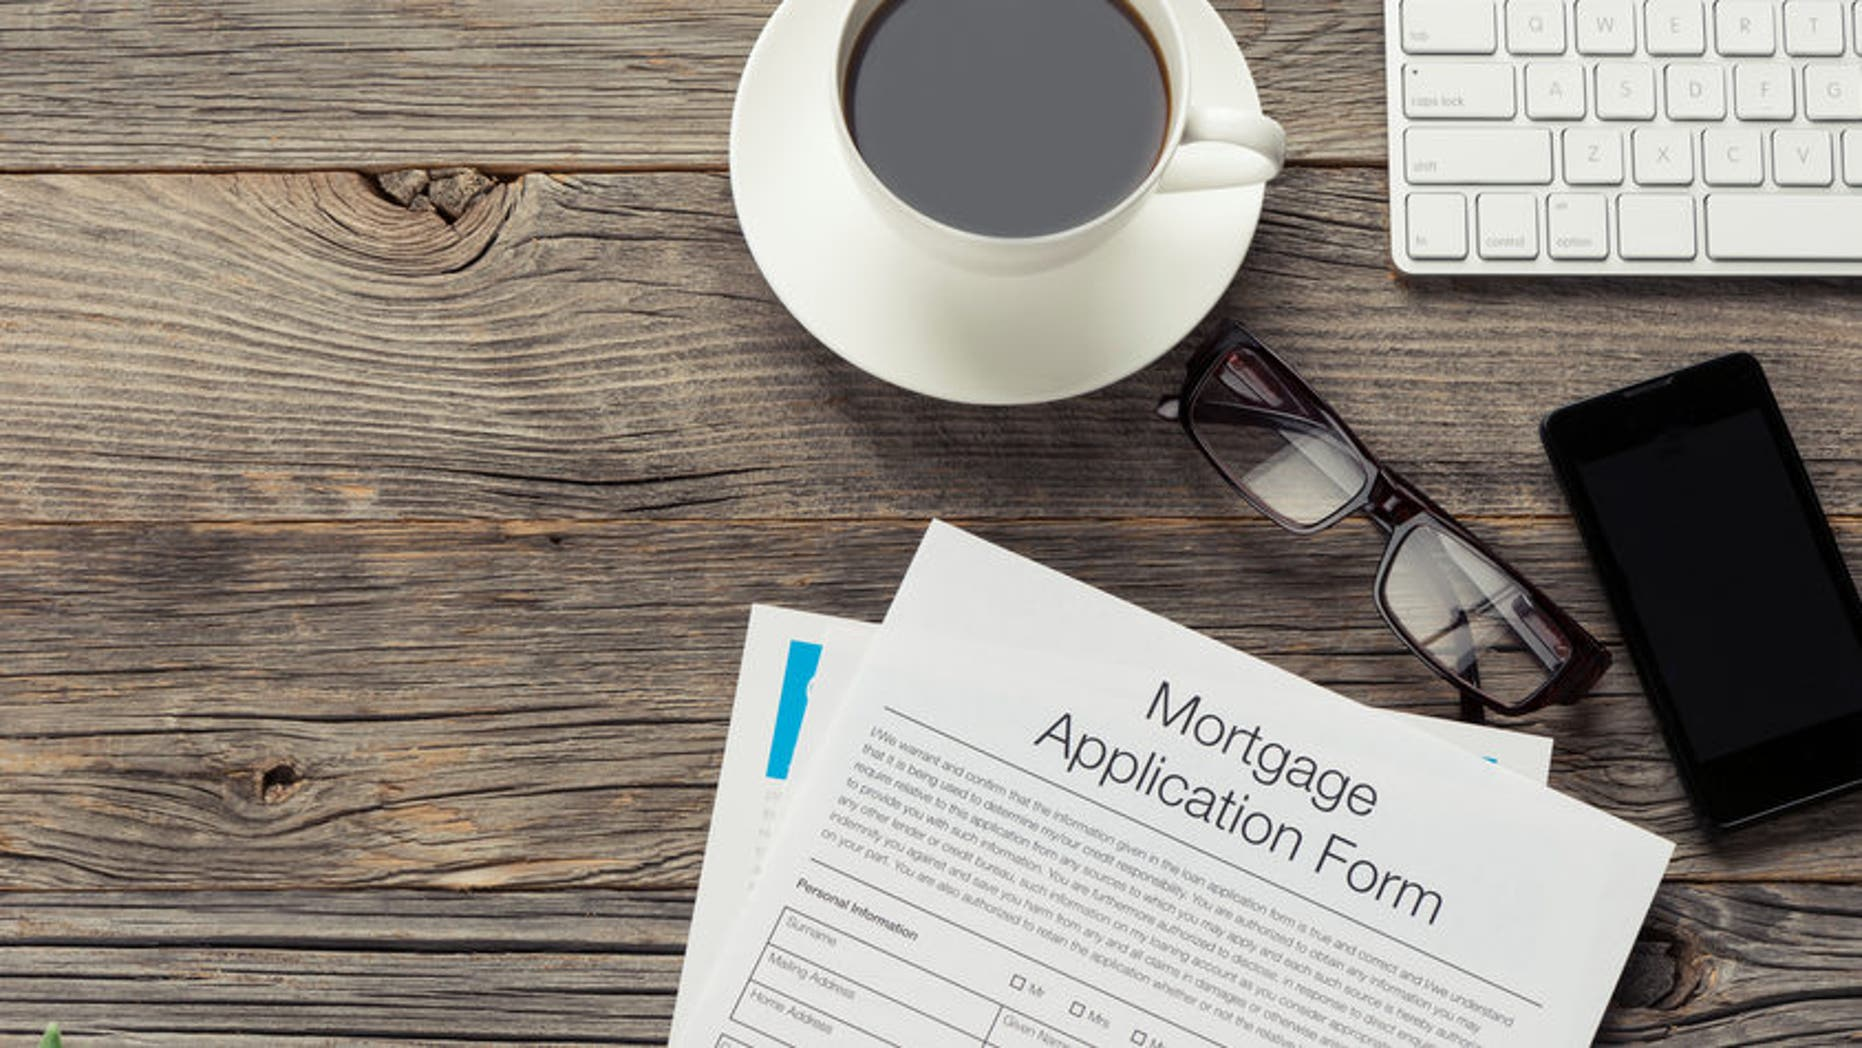 Mortgage application form on wooden table. There is also a mobile phone, computer keyboard, coffee, Filofax organizer notepad and glasses on the table. The table is made of wood and is quite old. Copy space on left.